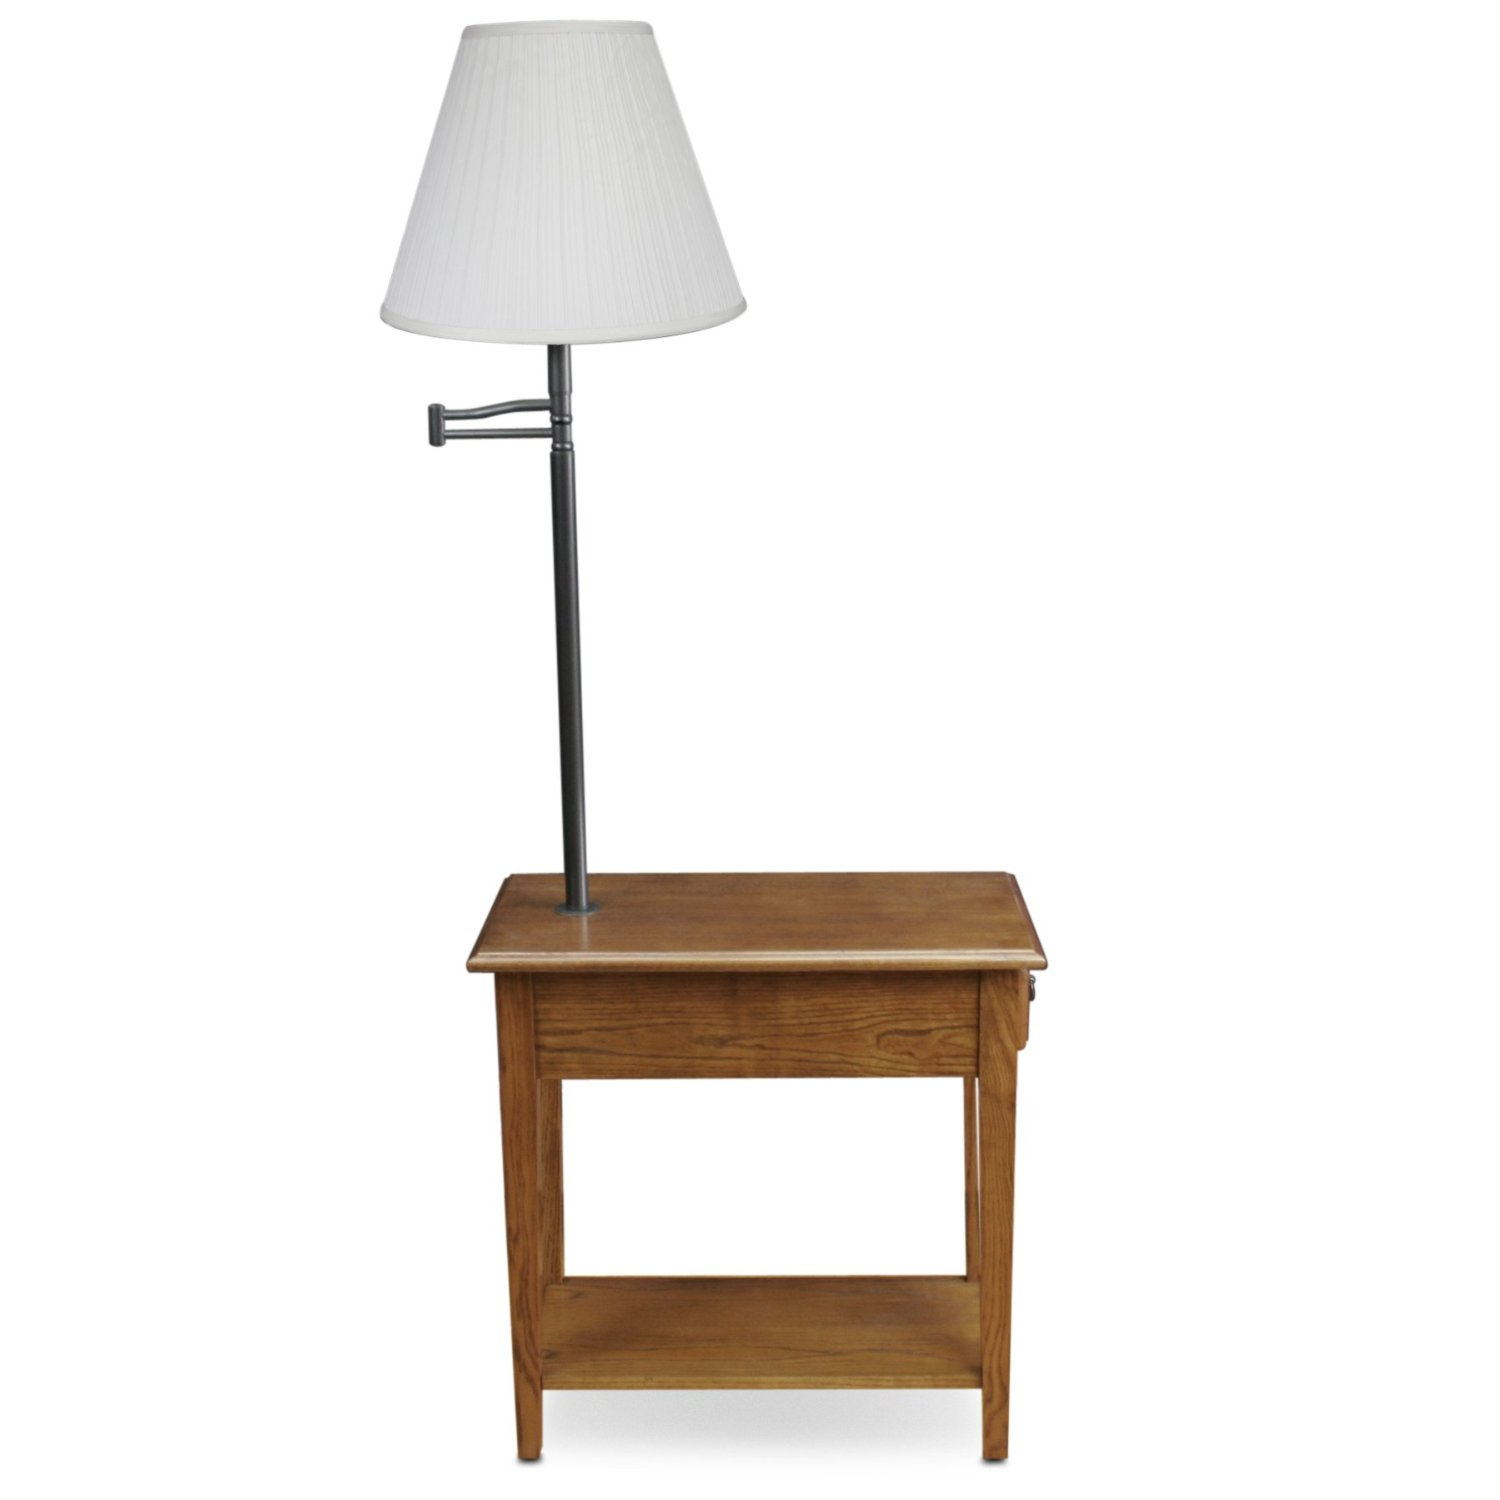 light colored end tables table lamp combo floor combination with and living room lamps built wood oak accent full size marble console oval coffee storage shabby chic dining skinny